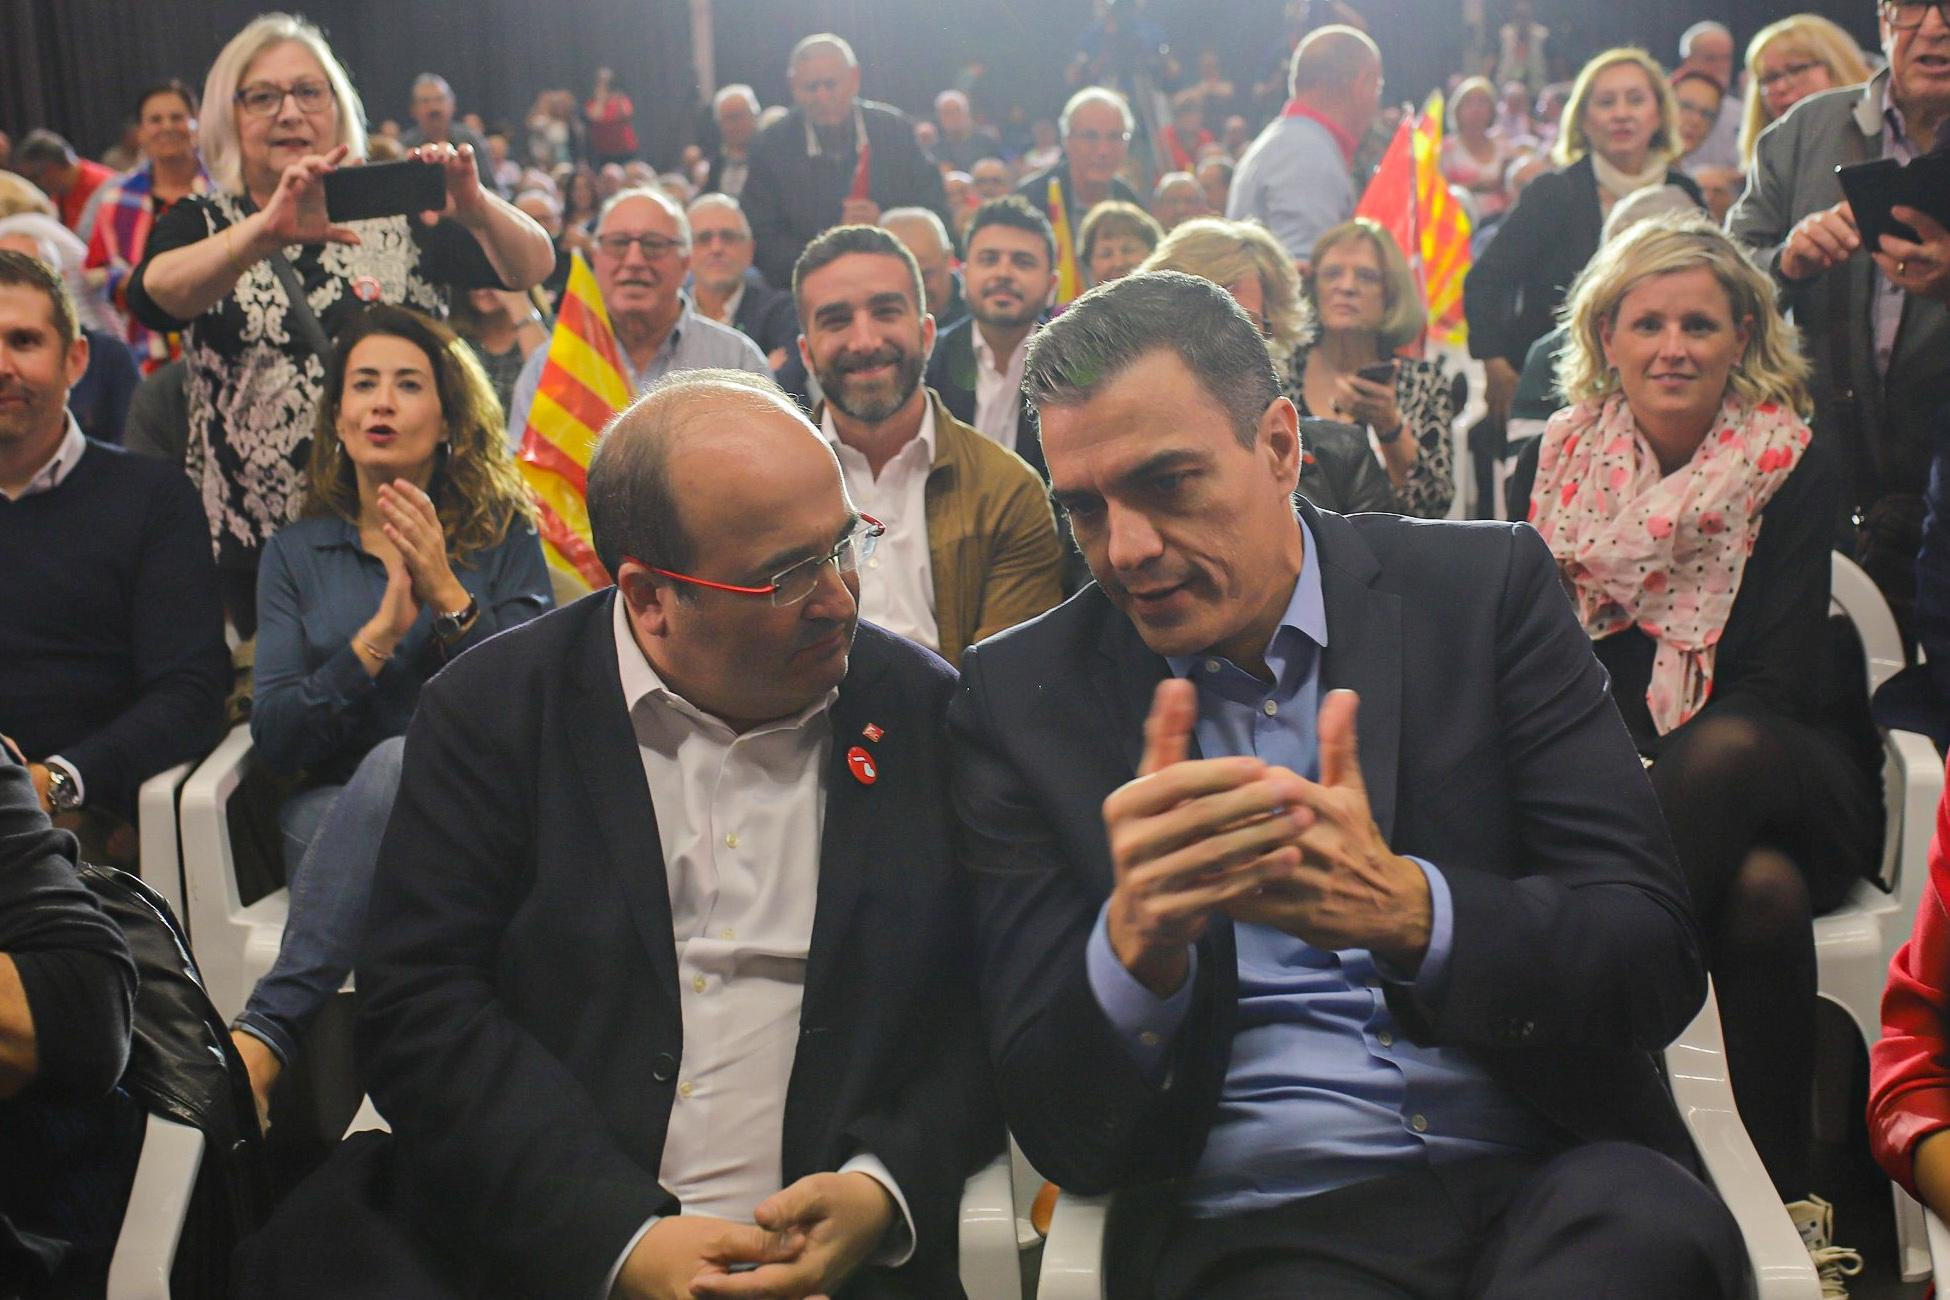 """Prime Minister Pedro Sánchez met Miquel Iceta, first secretary of the Party of Socialists of Catalonia and warns Catalan regional president Quim Torra to do not to cross """"the border of law"""", to condemn the ongoing violence in the region. """"The state will always be the guarantor of those who exercises their right to demonstrate peacefully. Violent groups will not achieve their purpose. The only hope of the violent is that we make mistakes. They want us exalted and divided so that we fall into their provocations. They owe us to find firm, serene and united"""" . October 2019, Viladecans, Spain."""